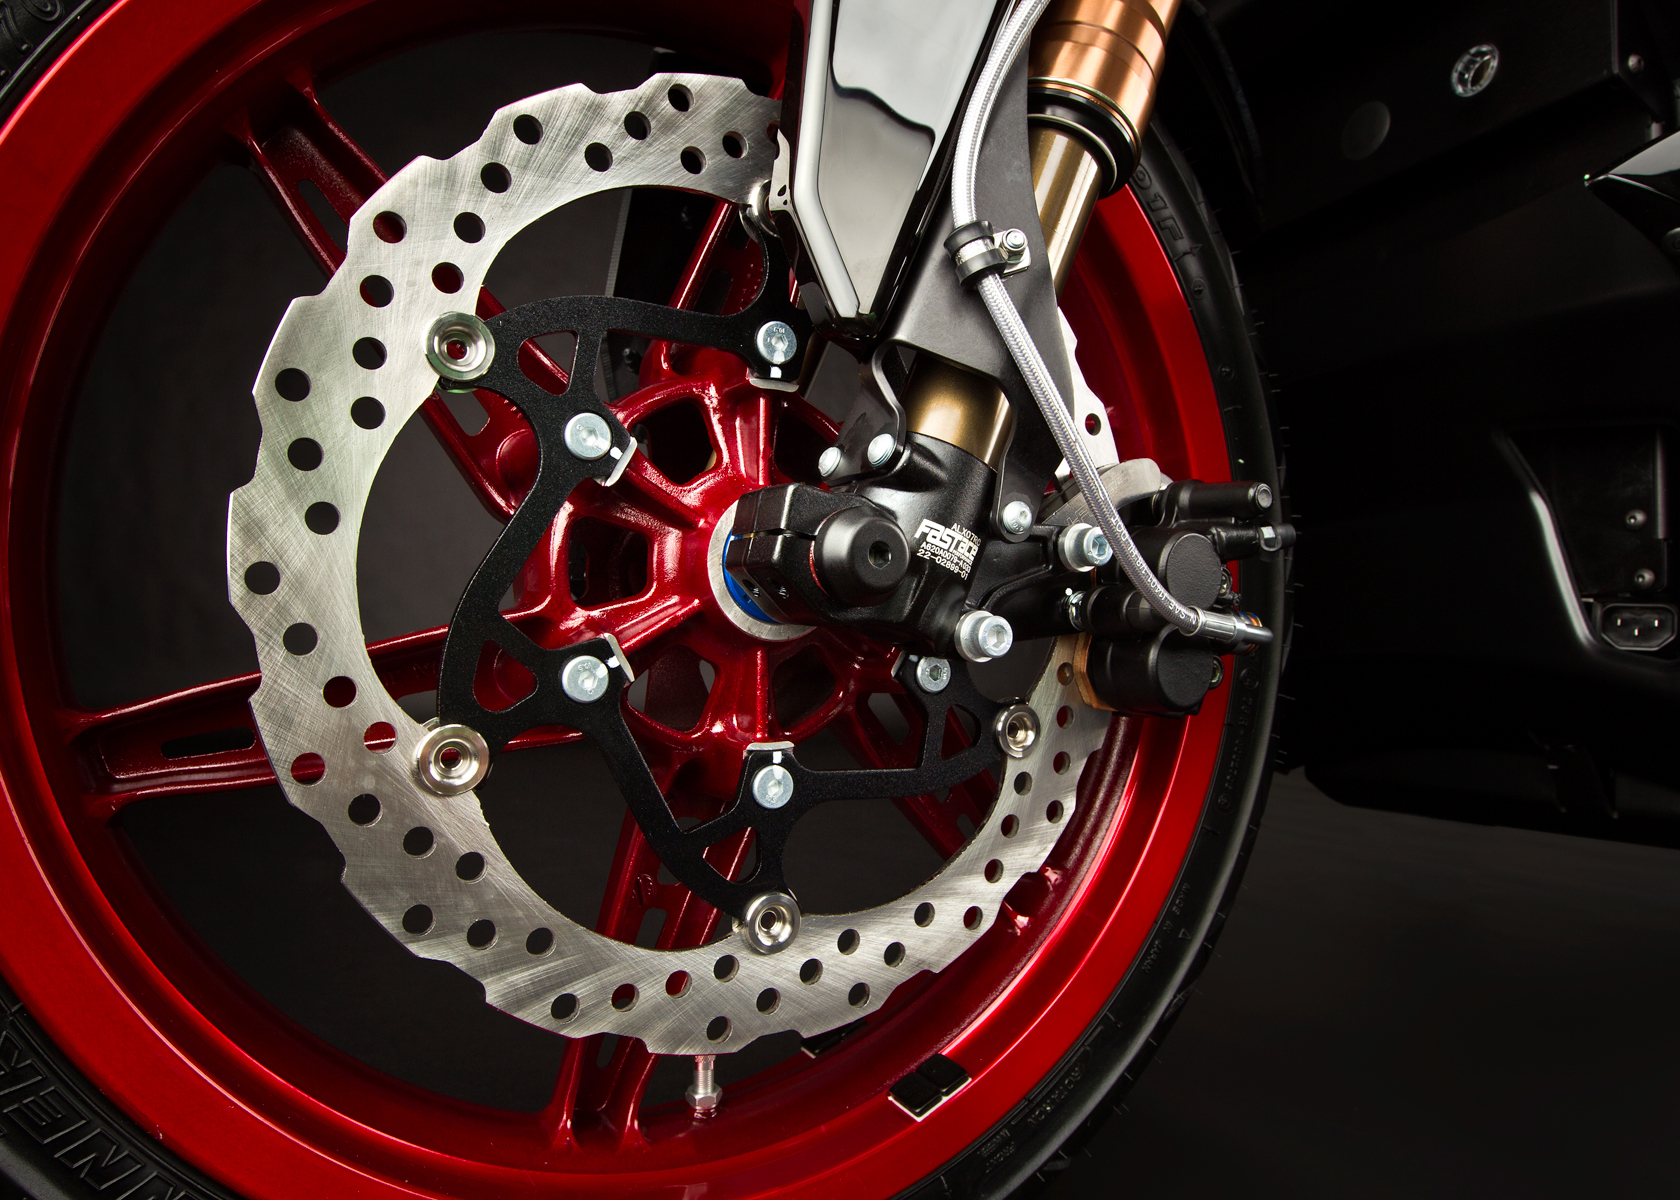 2012 Zero S Electric Motorcycle: Front Brake